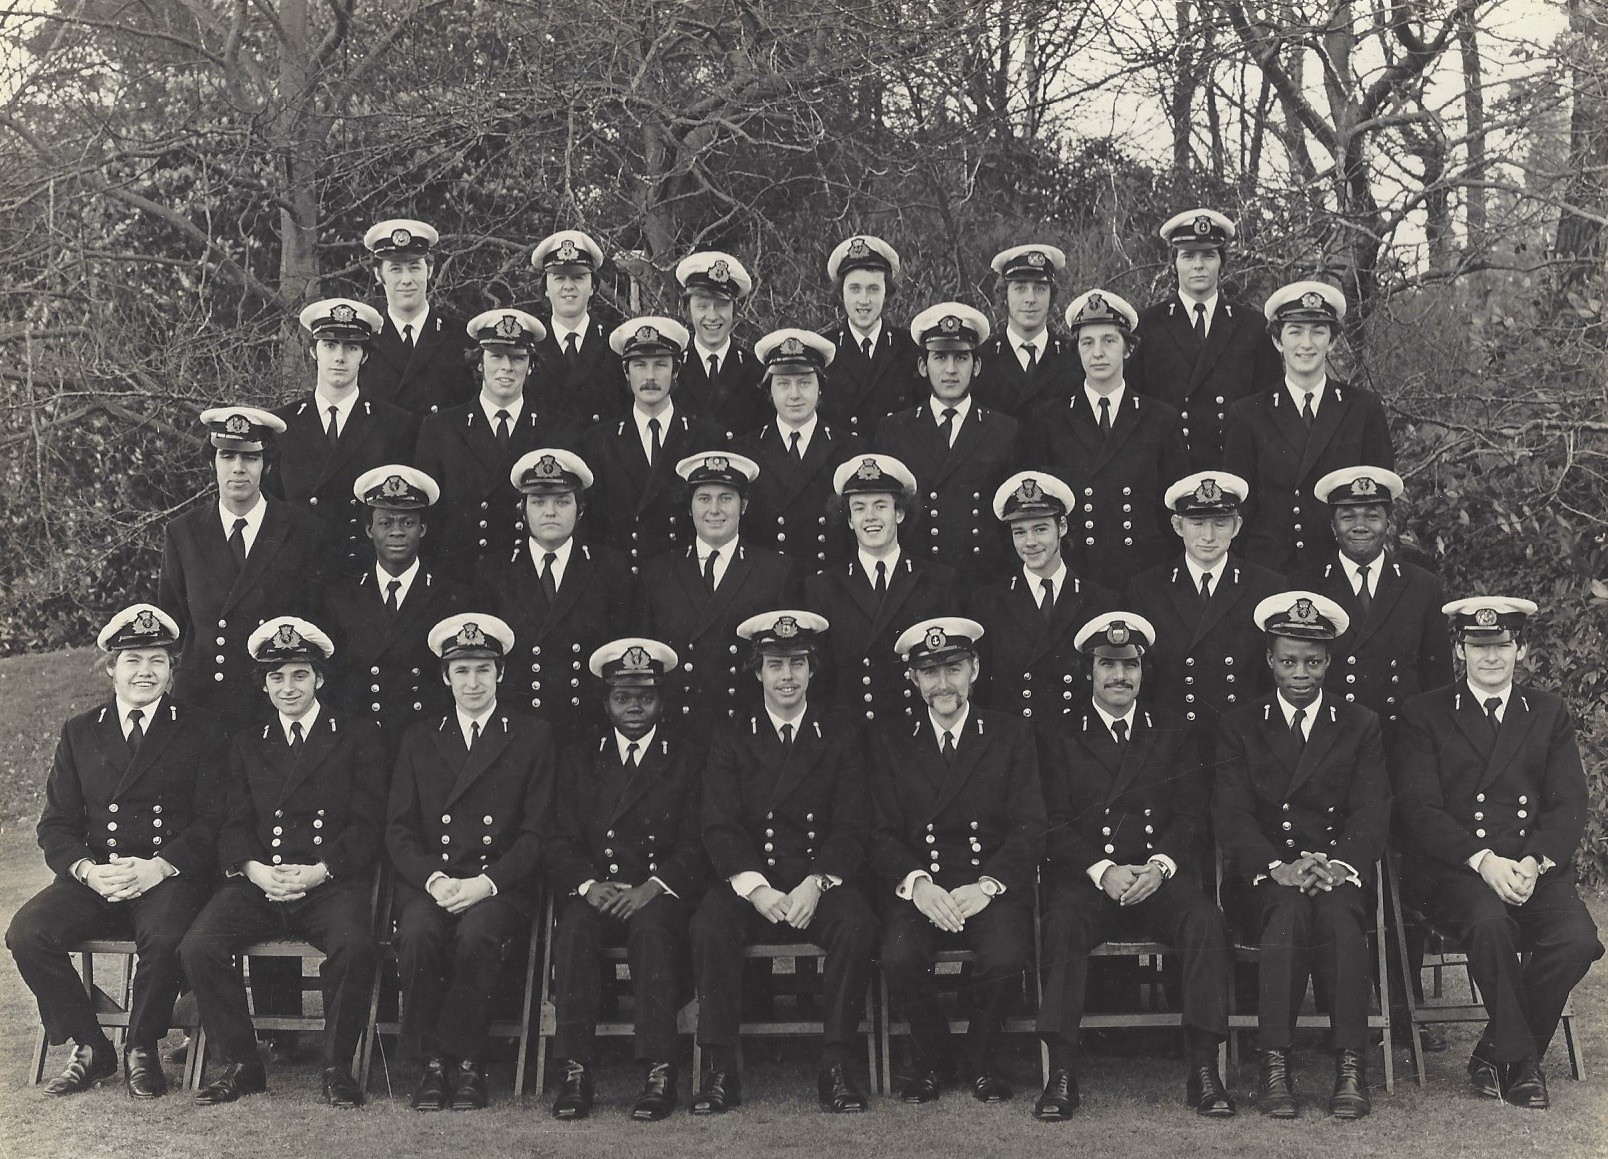 David Peel, pictured centre of the second to bottom row, graduating from Warsash Nautical College